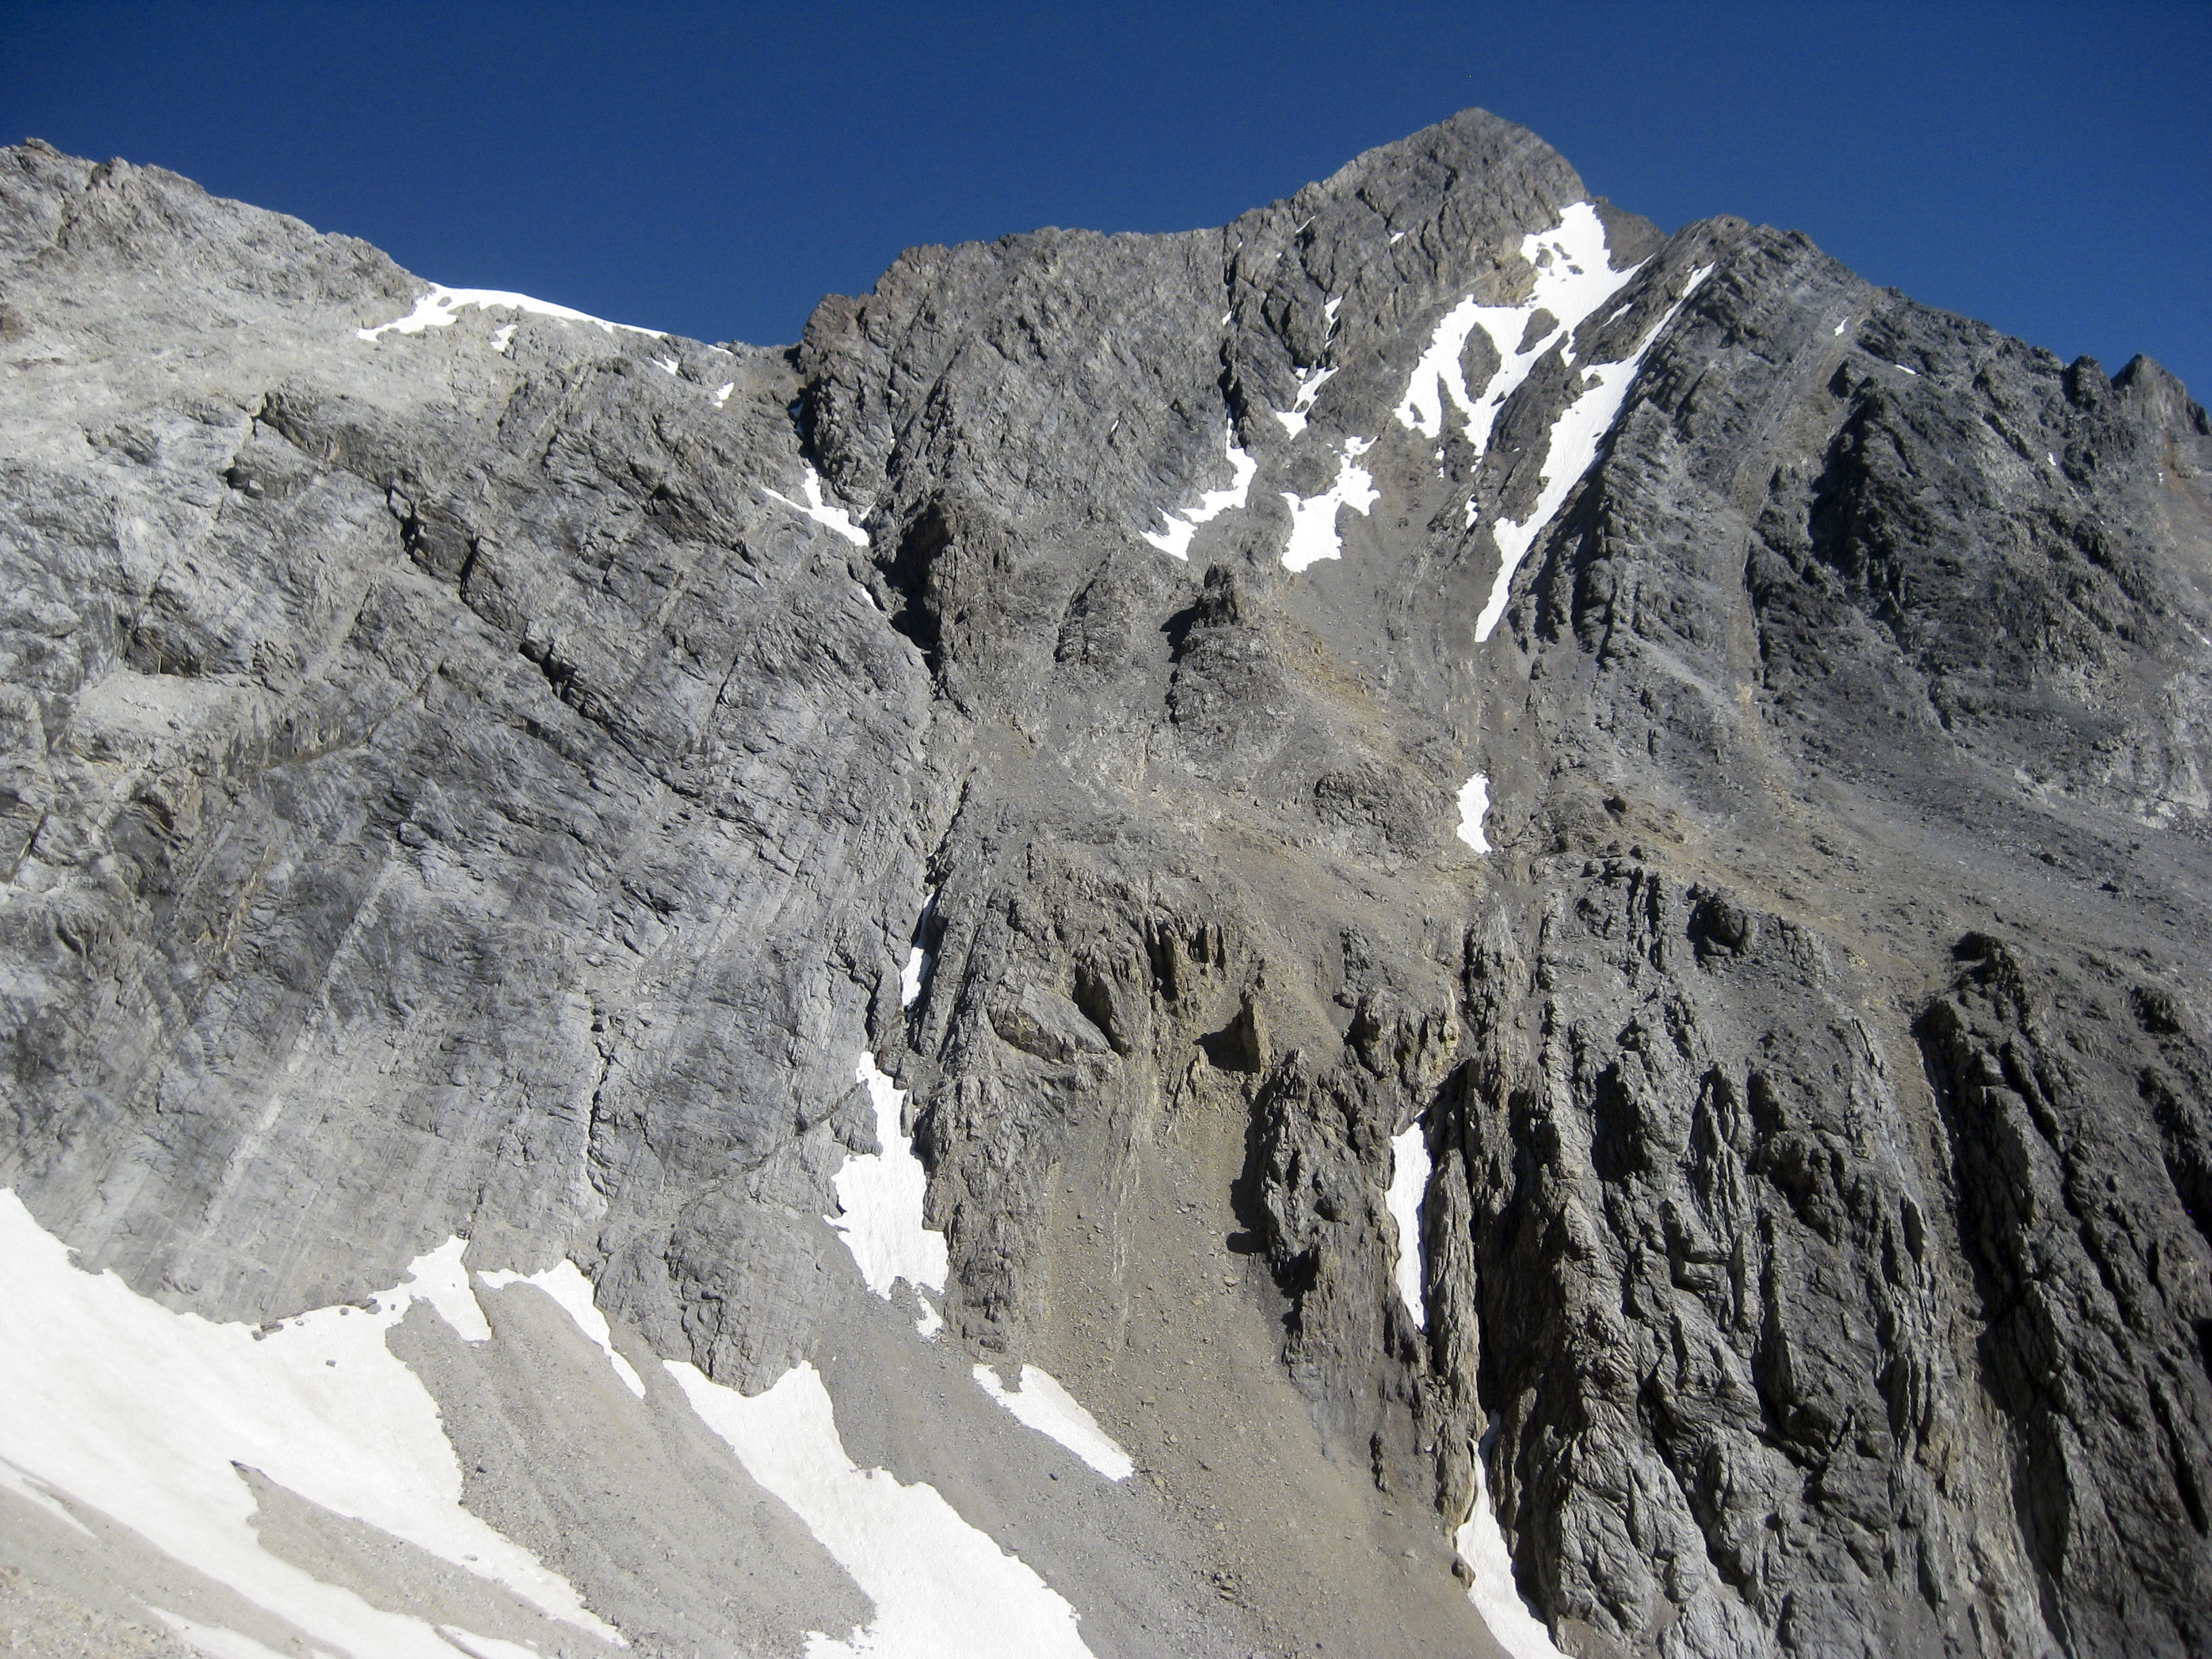 Mount Borah's South Face and South Couloir. Photo - Wes Collins